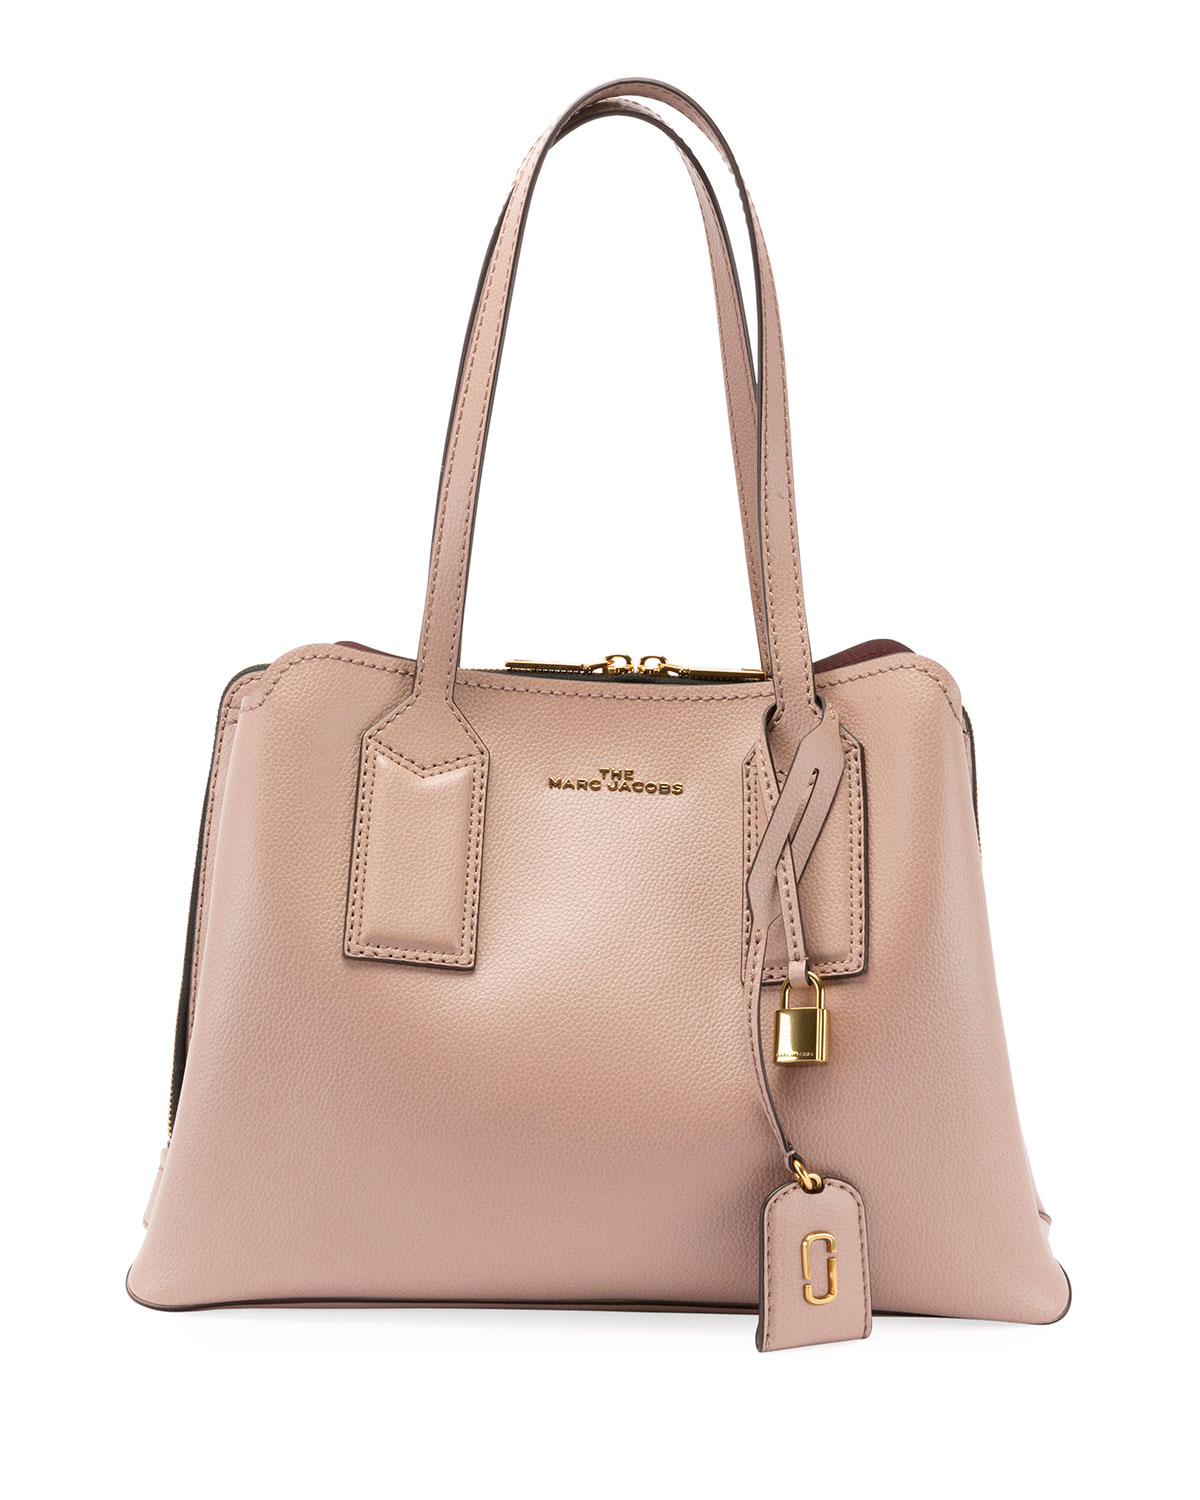 26380f7dfe Marc Jacobs The Editor Large Pebbled Leather Tote Bag | Neiman Marcus